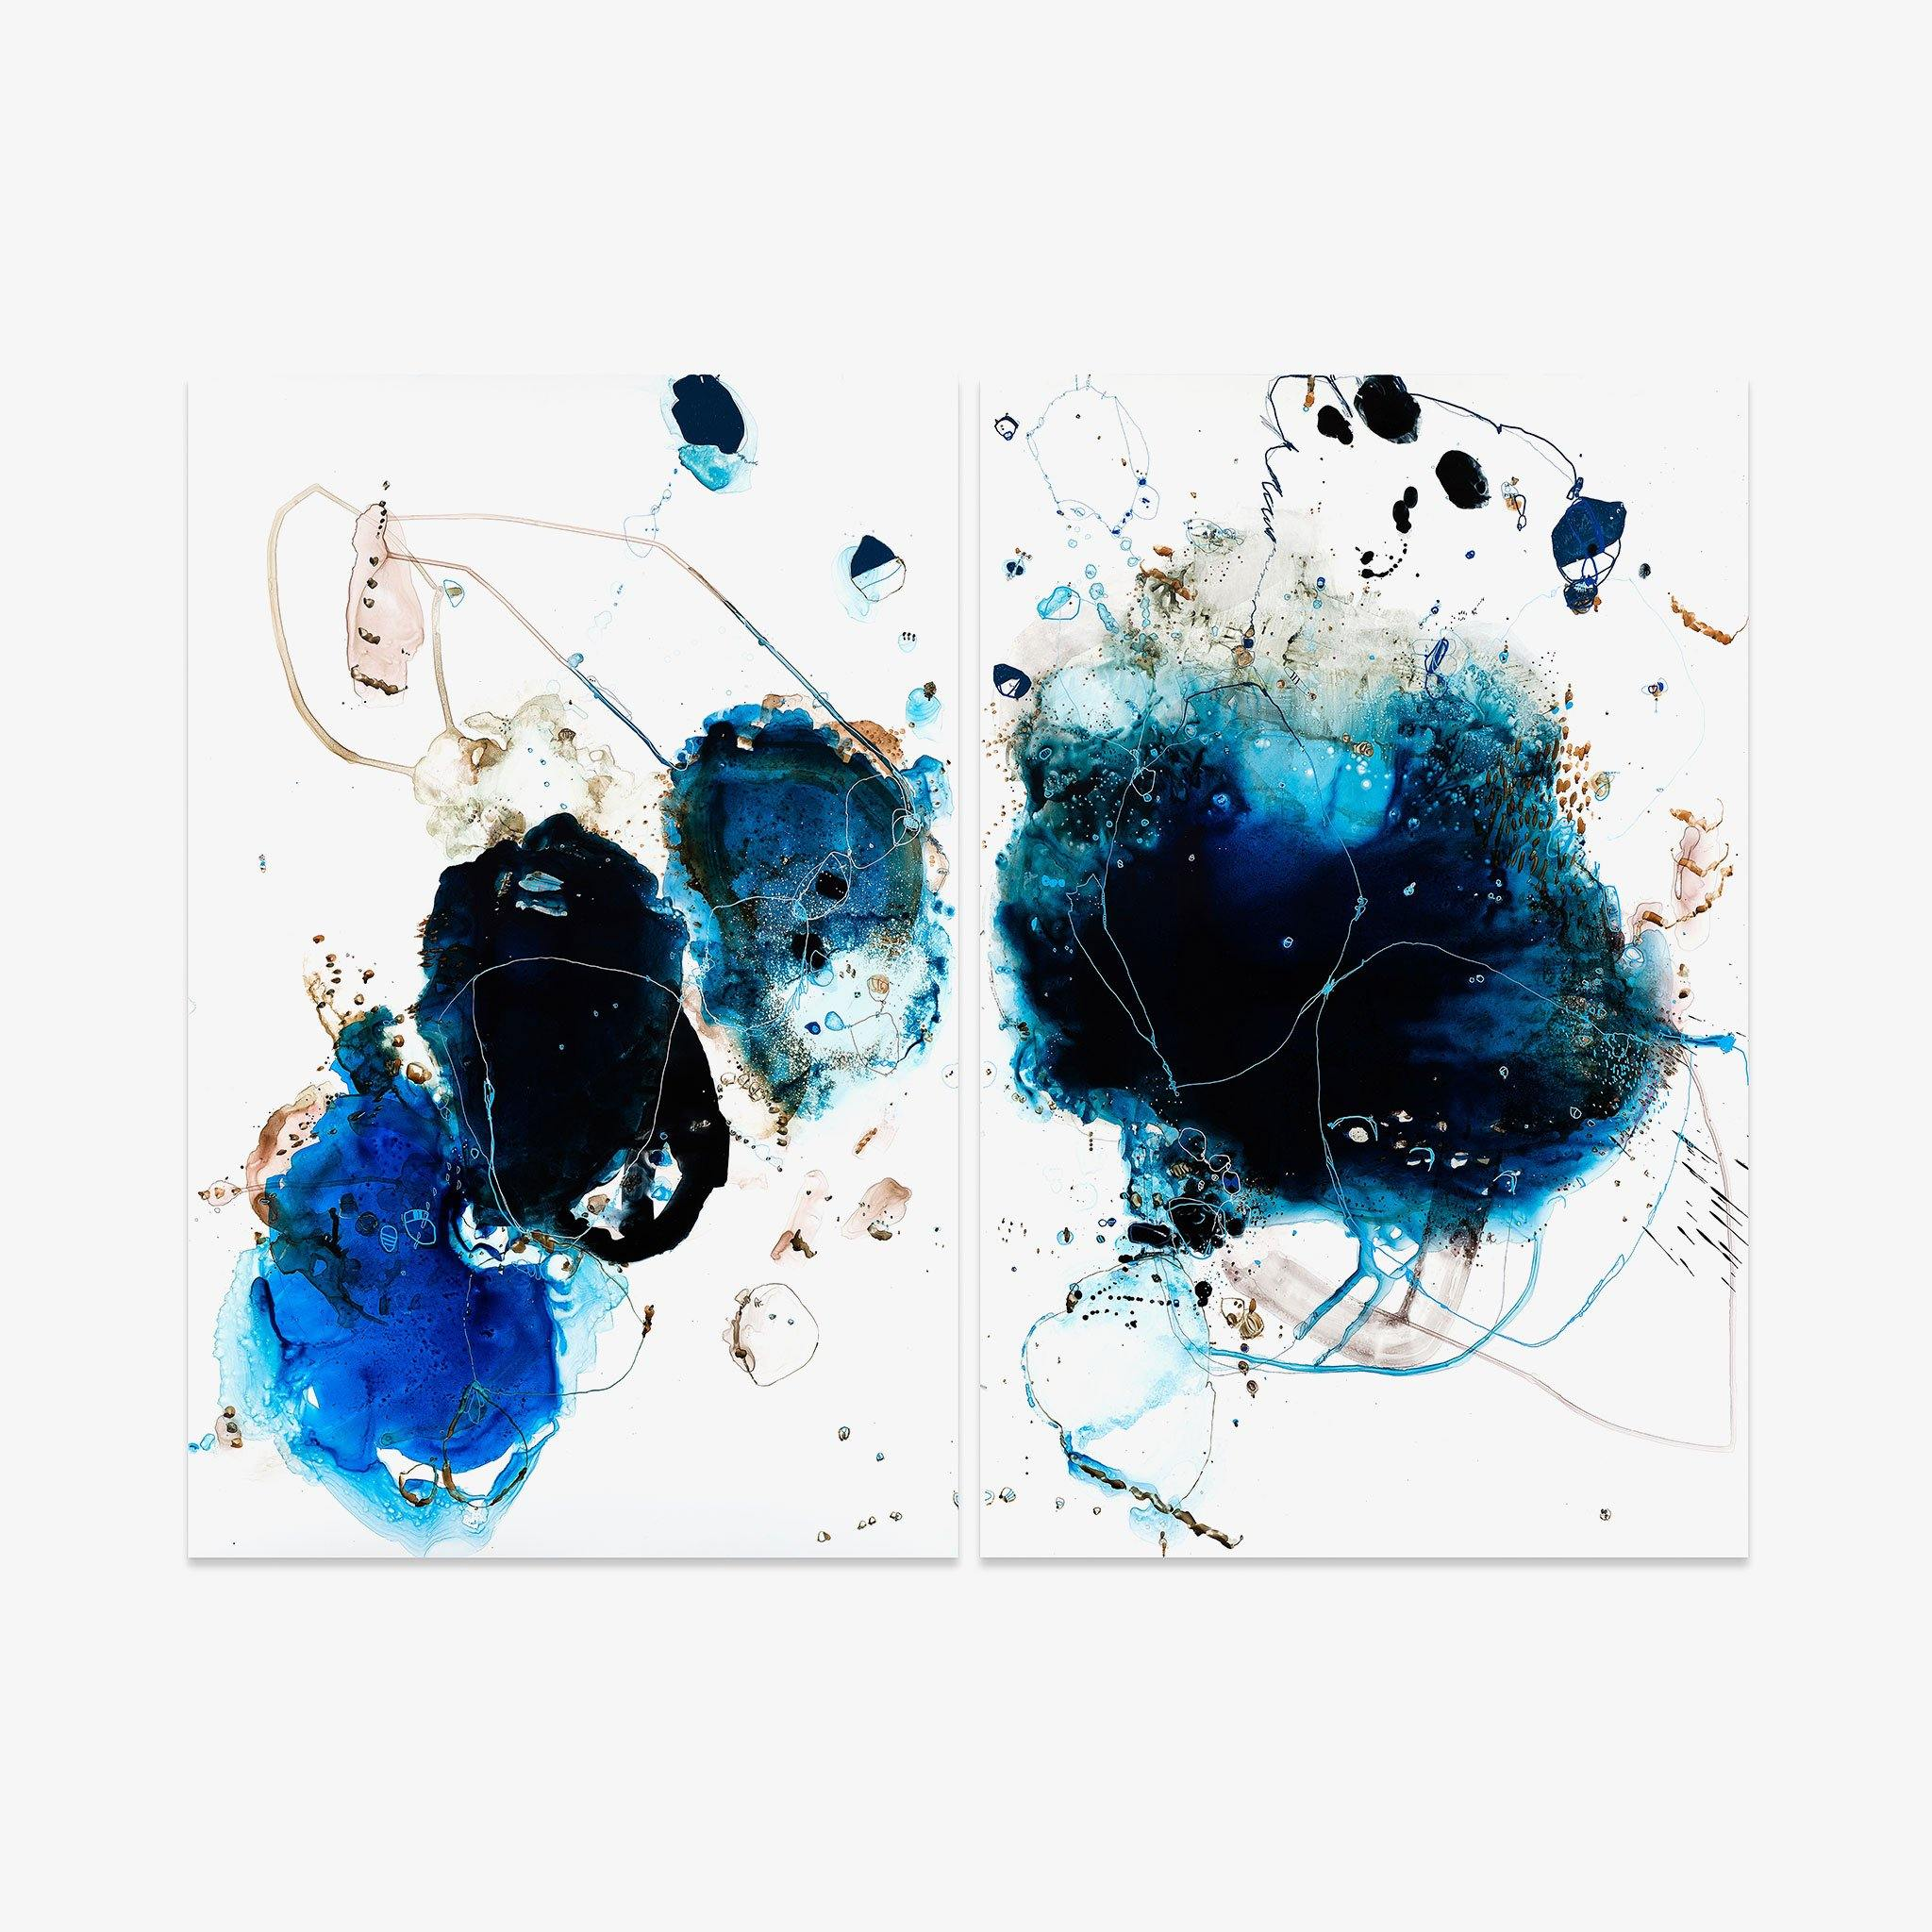 Tidal 9185 (Diptych), Original Work on Paper  by  Tidal 9185 (Diptych) Tappan